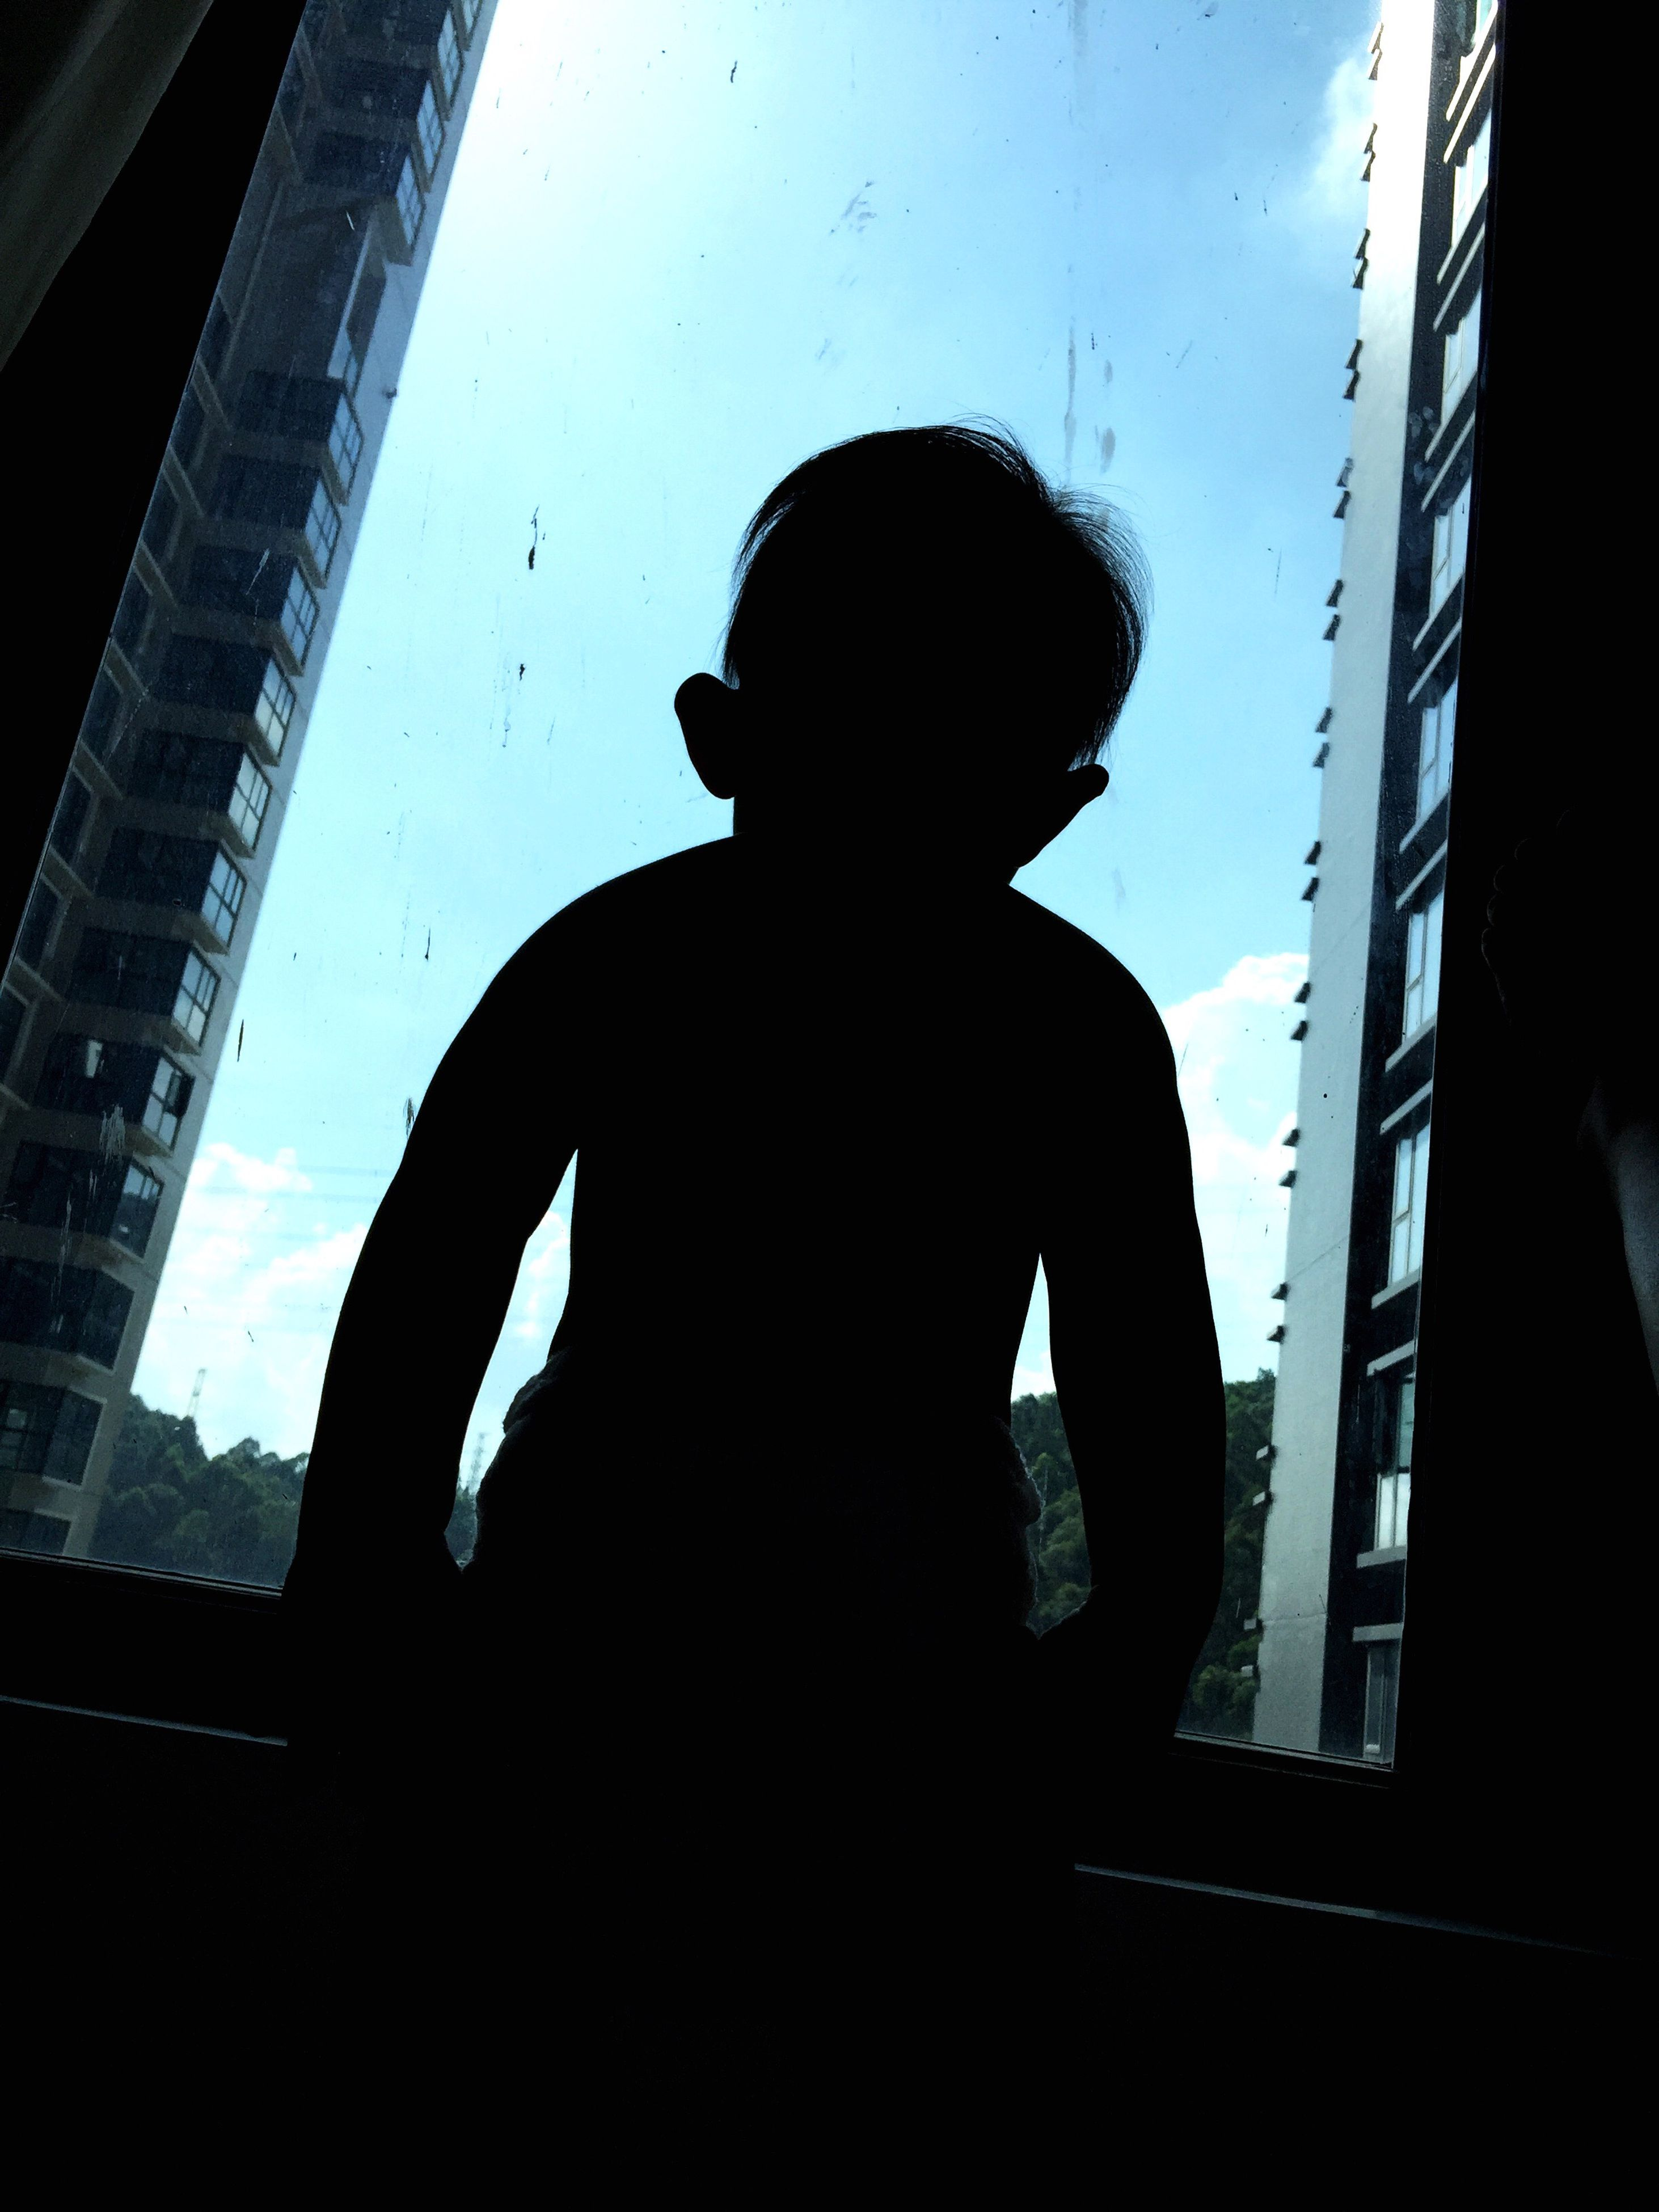 window, silhouette, indoors, looking through window, one person, low angle view, standing, childhood, day, real people, people